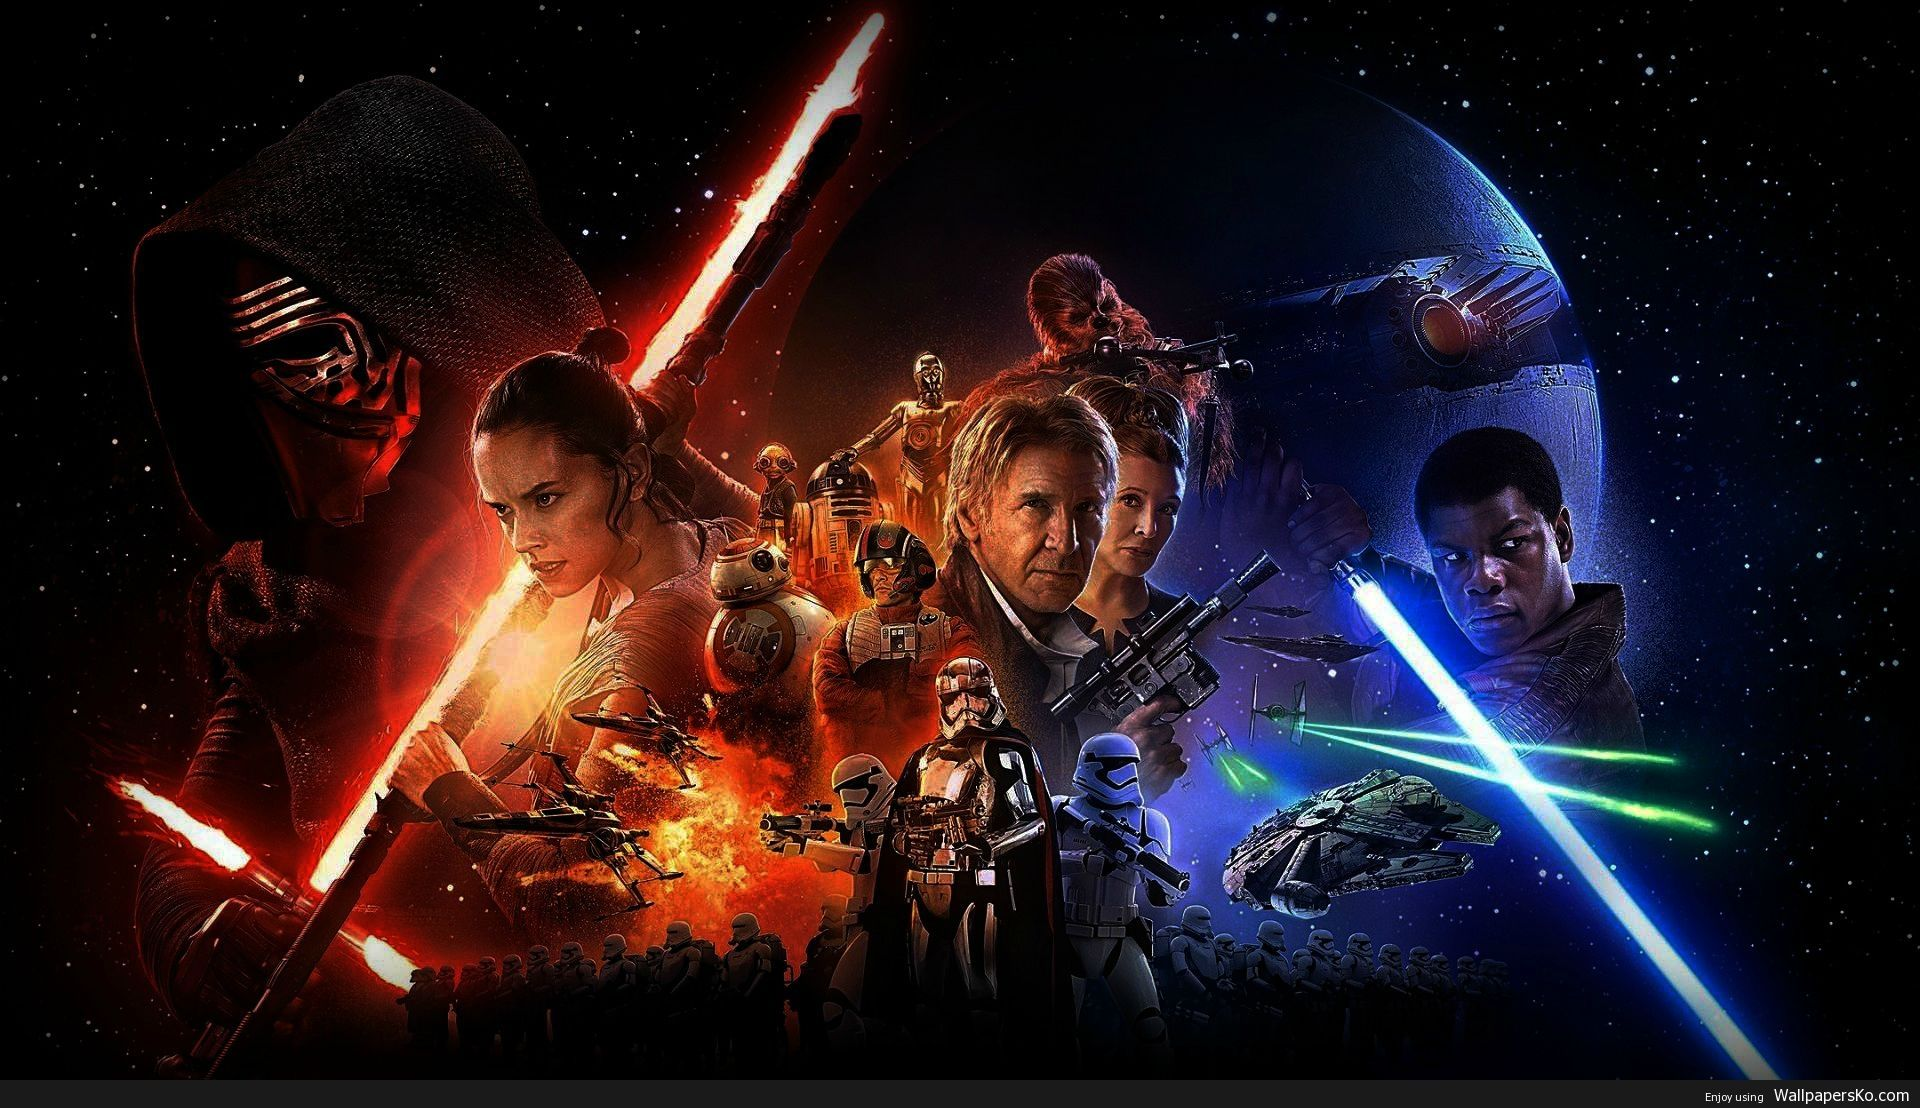 Star Wars The Force Awakens 1920x1080 Wallpaper Http